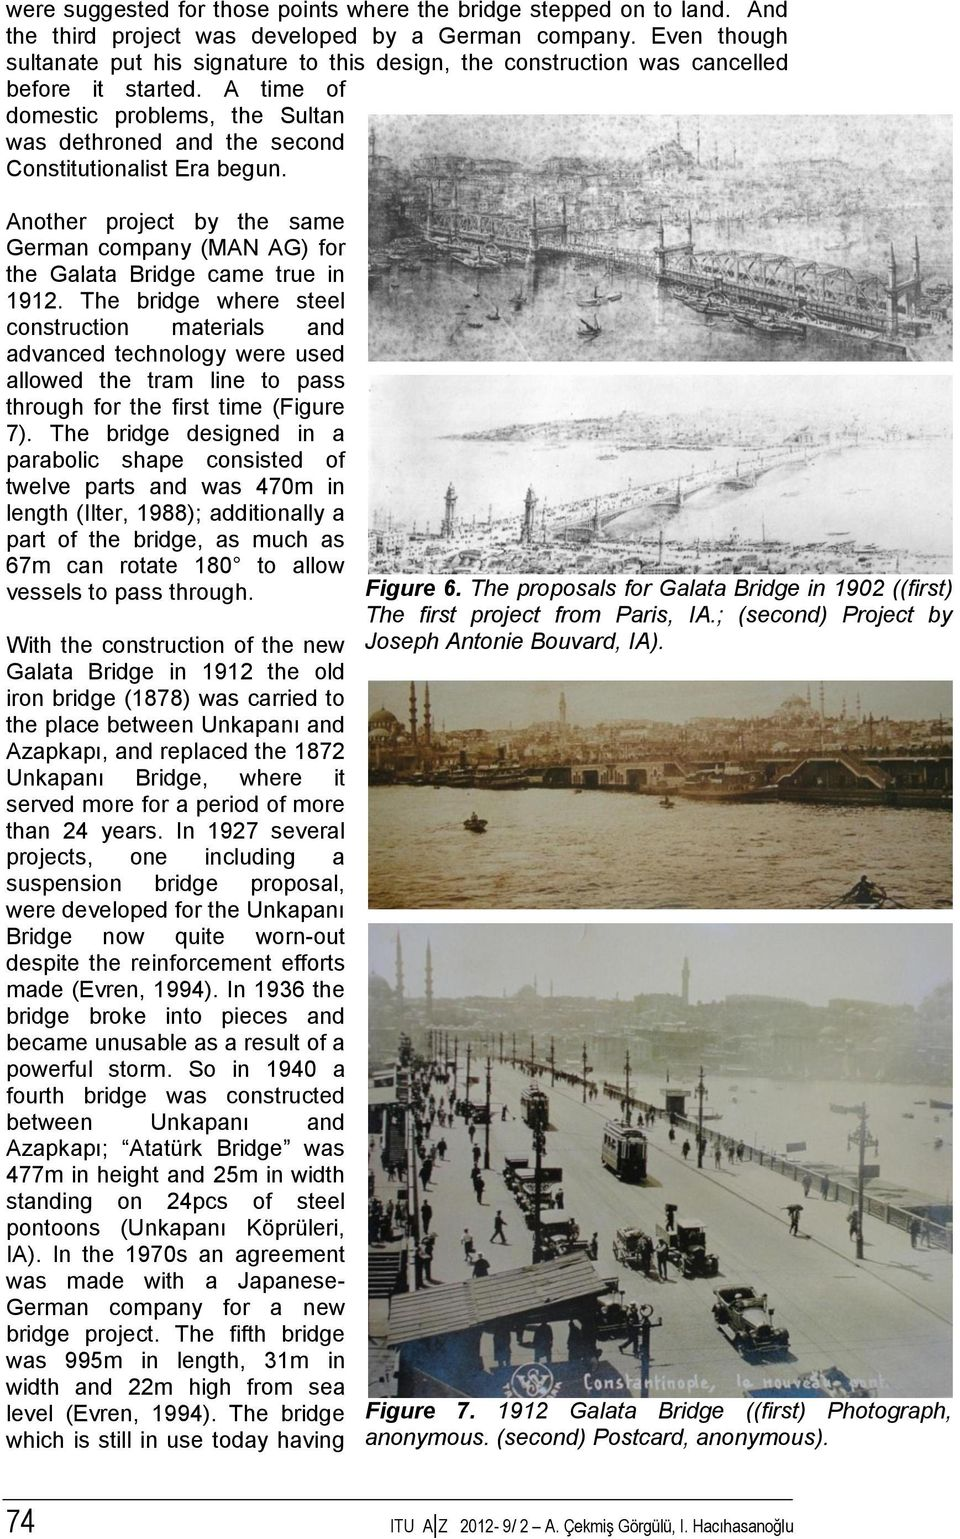 A time of domestic problems, the Sultan was dethroned and the second Constitutionalist Era begun. Another project by the same German company (MAN AG) for the Galata Bridge came true in 1912.